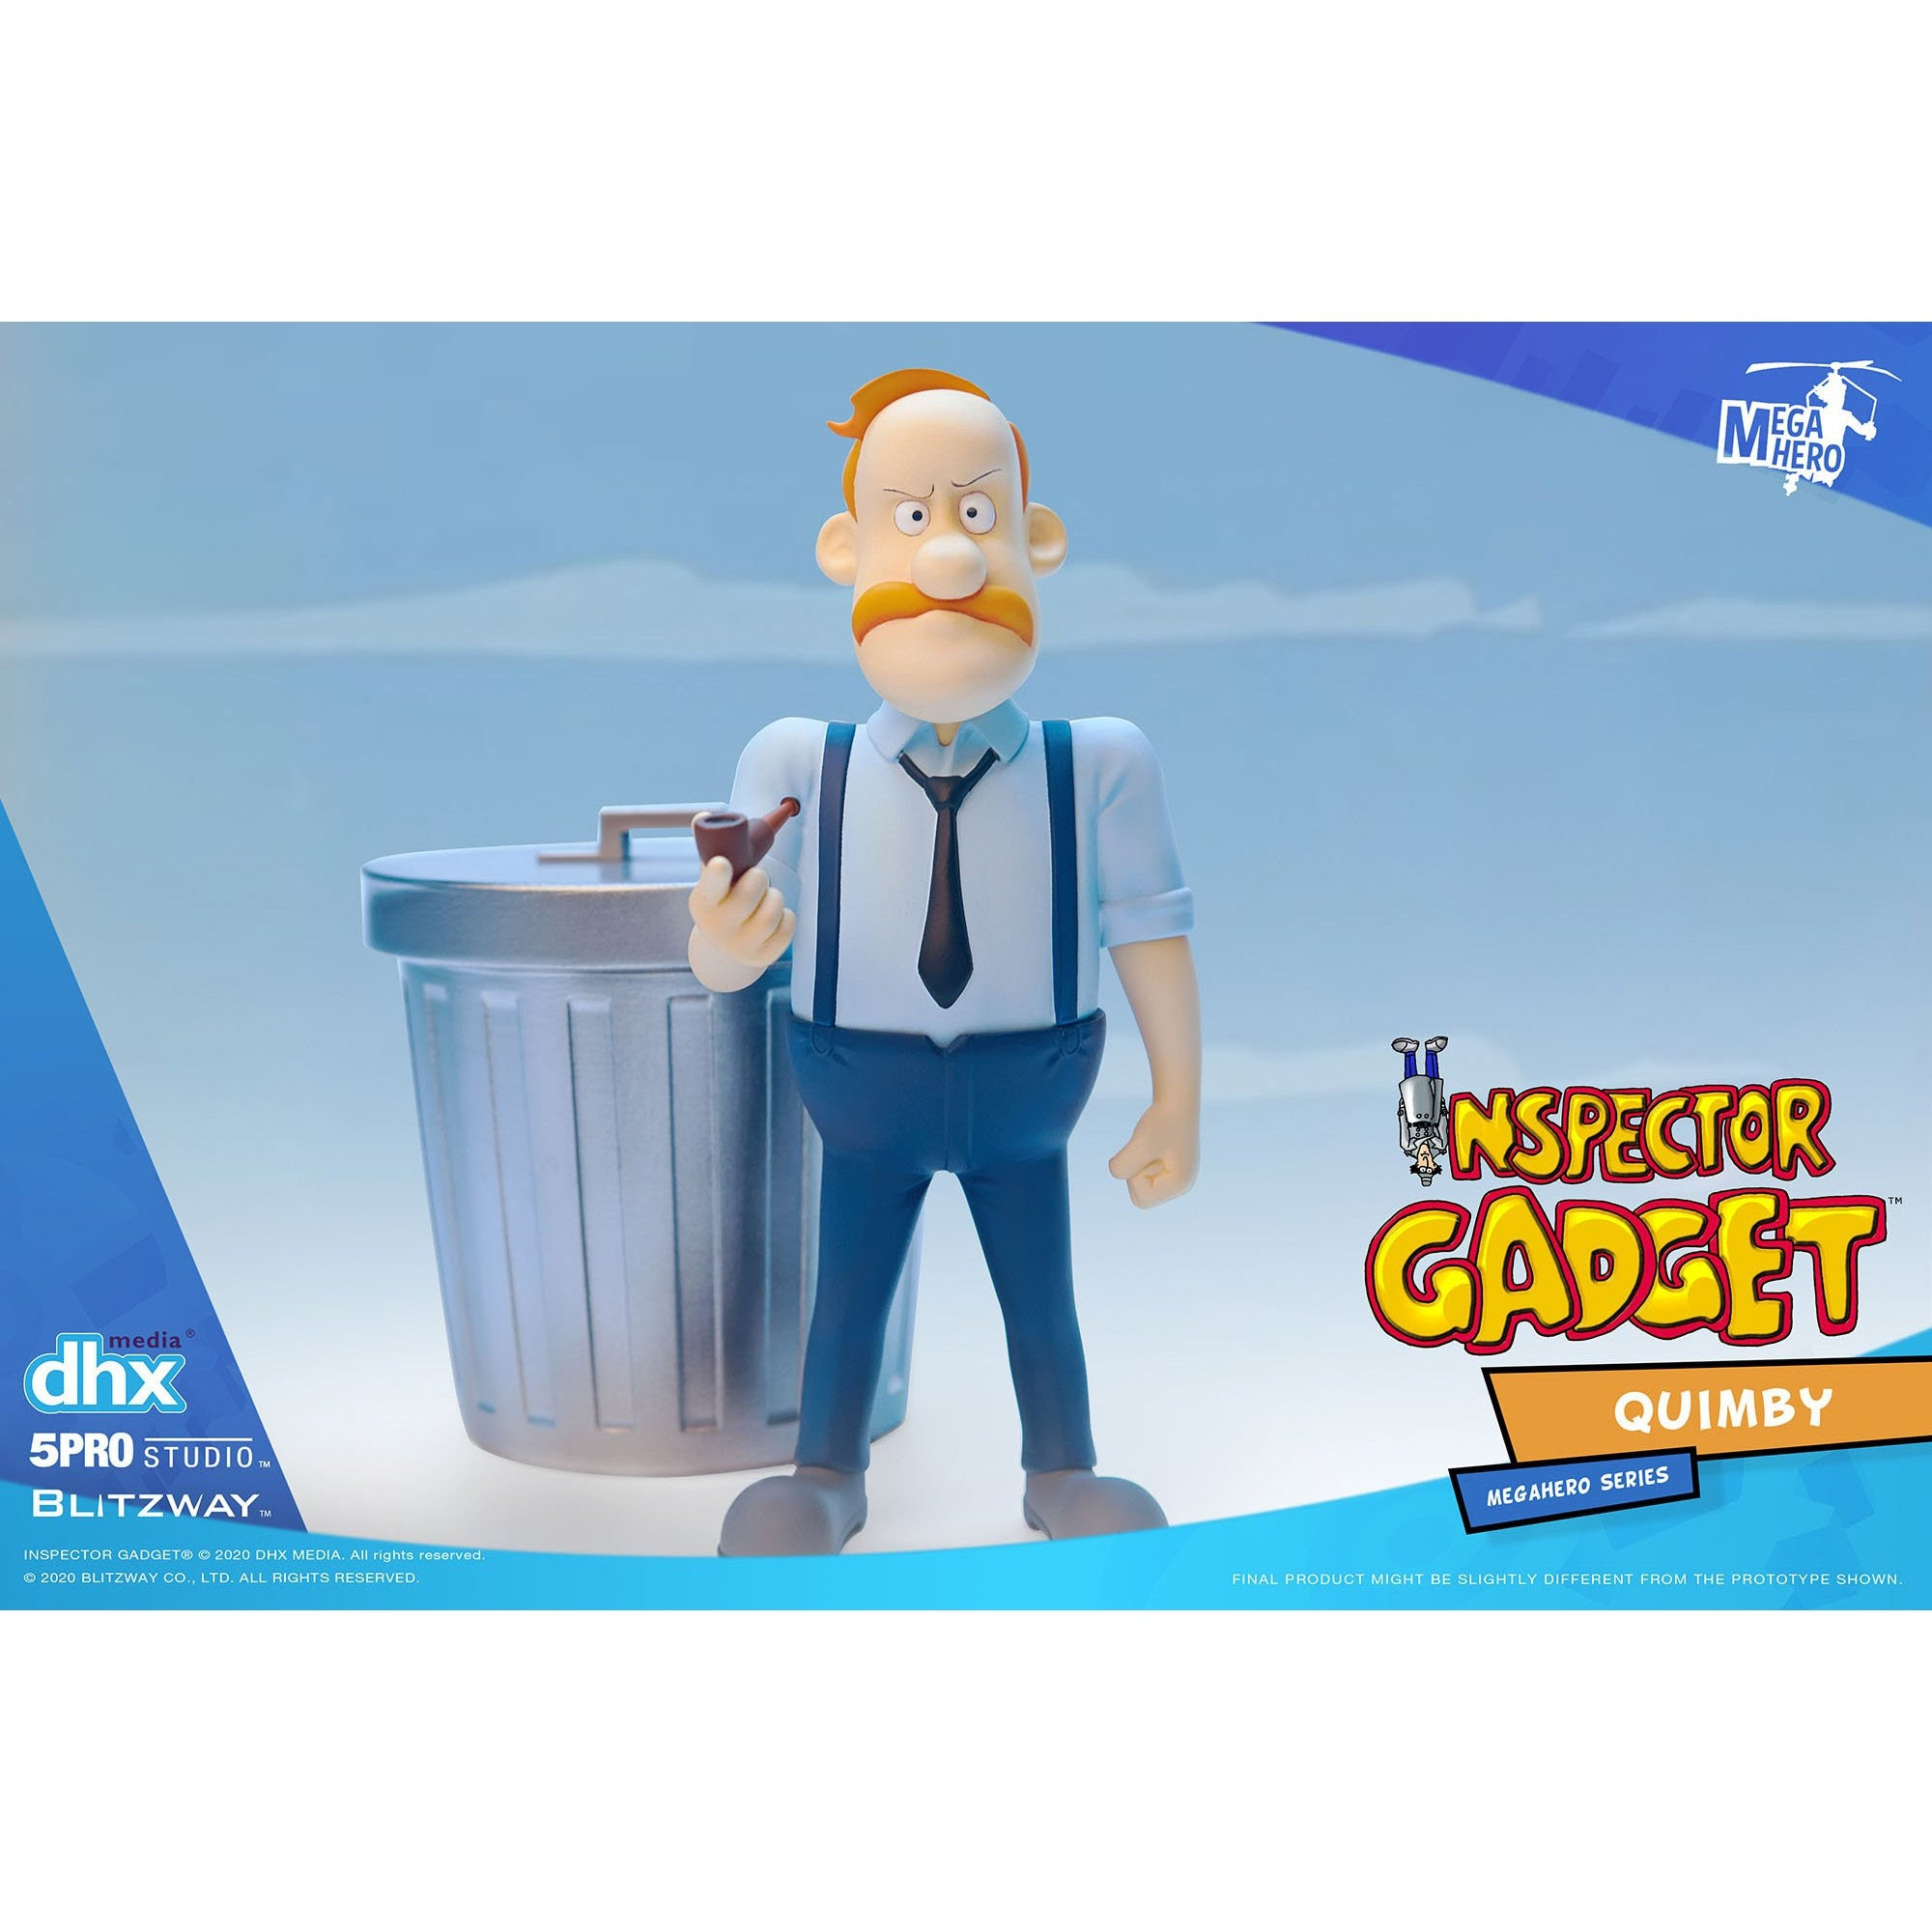 Image of Inspector Gadget MEGAHERO Series - Quimby 1:12 Scale Action Figure - Q4 2020